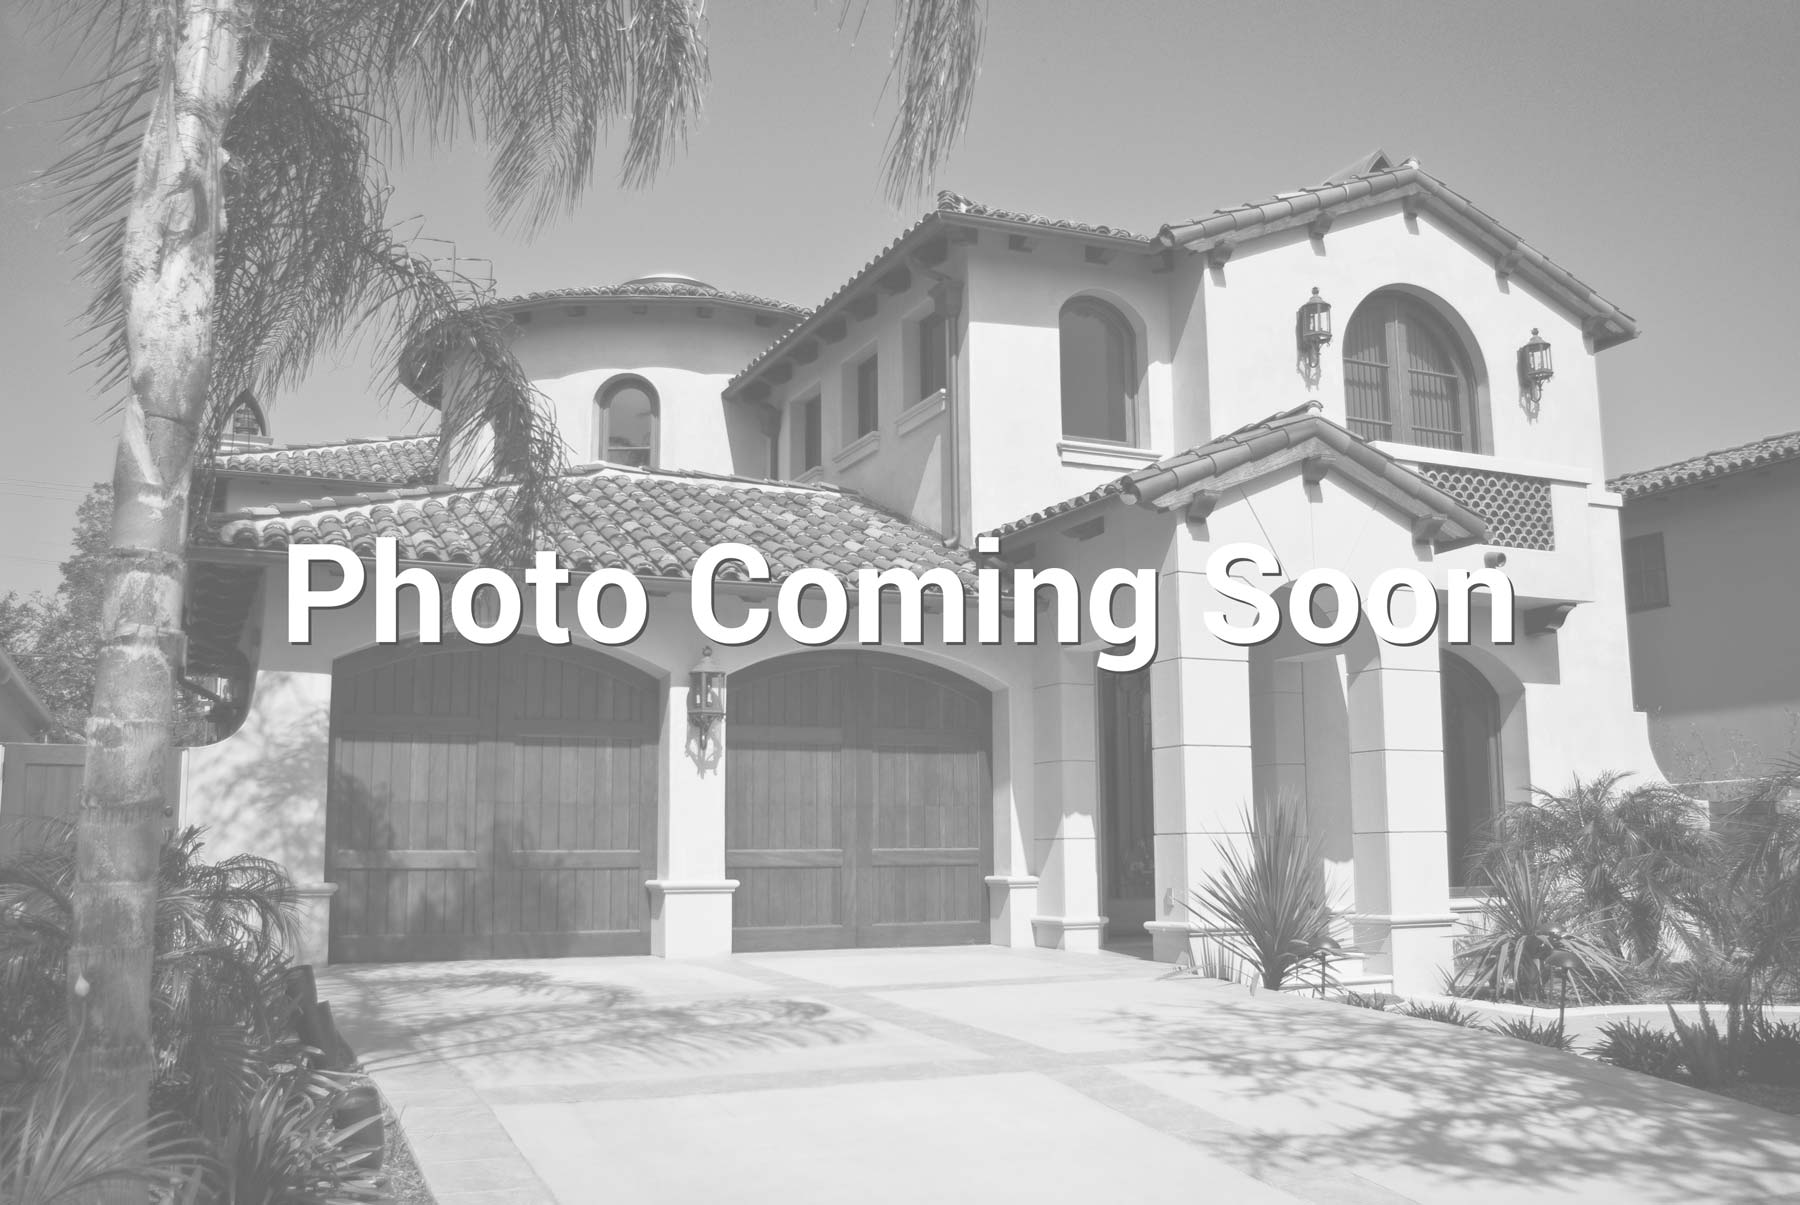 $550,000 - 3Br/3Ba - Home for Sale in Fountain Hills Az Fp 401a, Fountain Hills